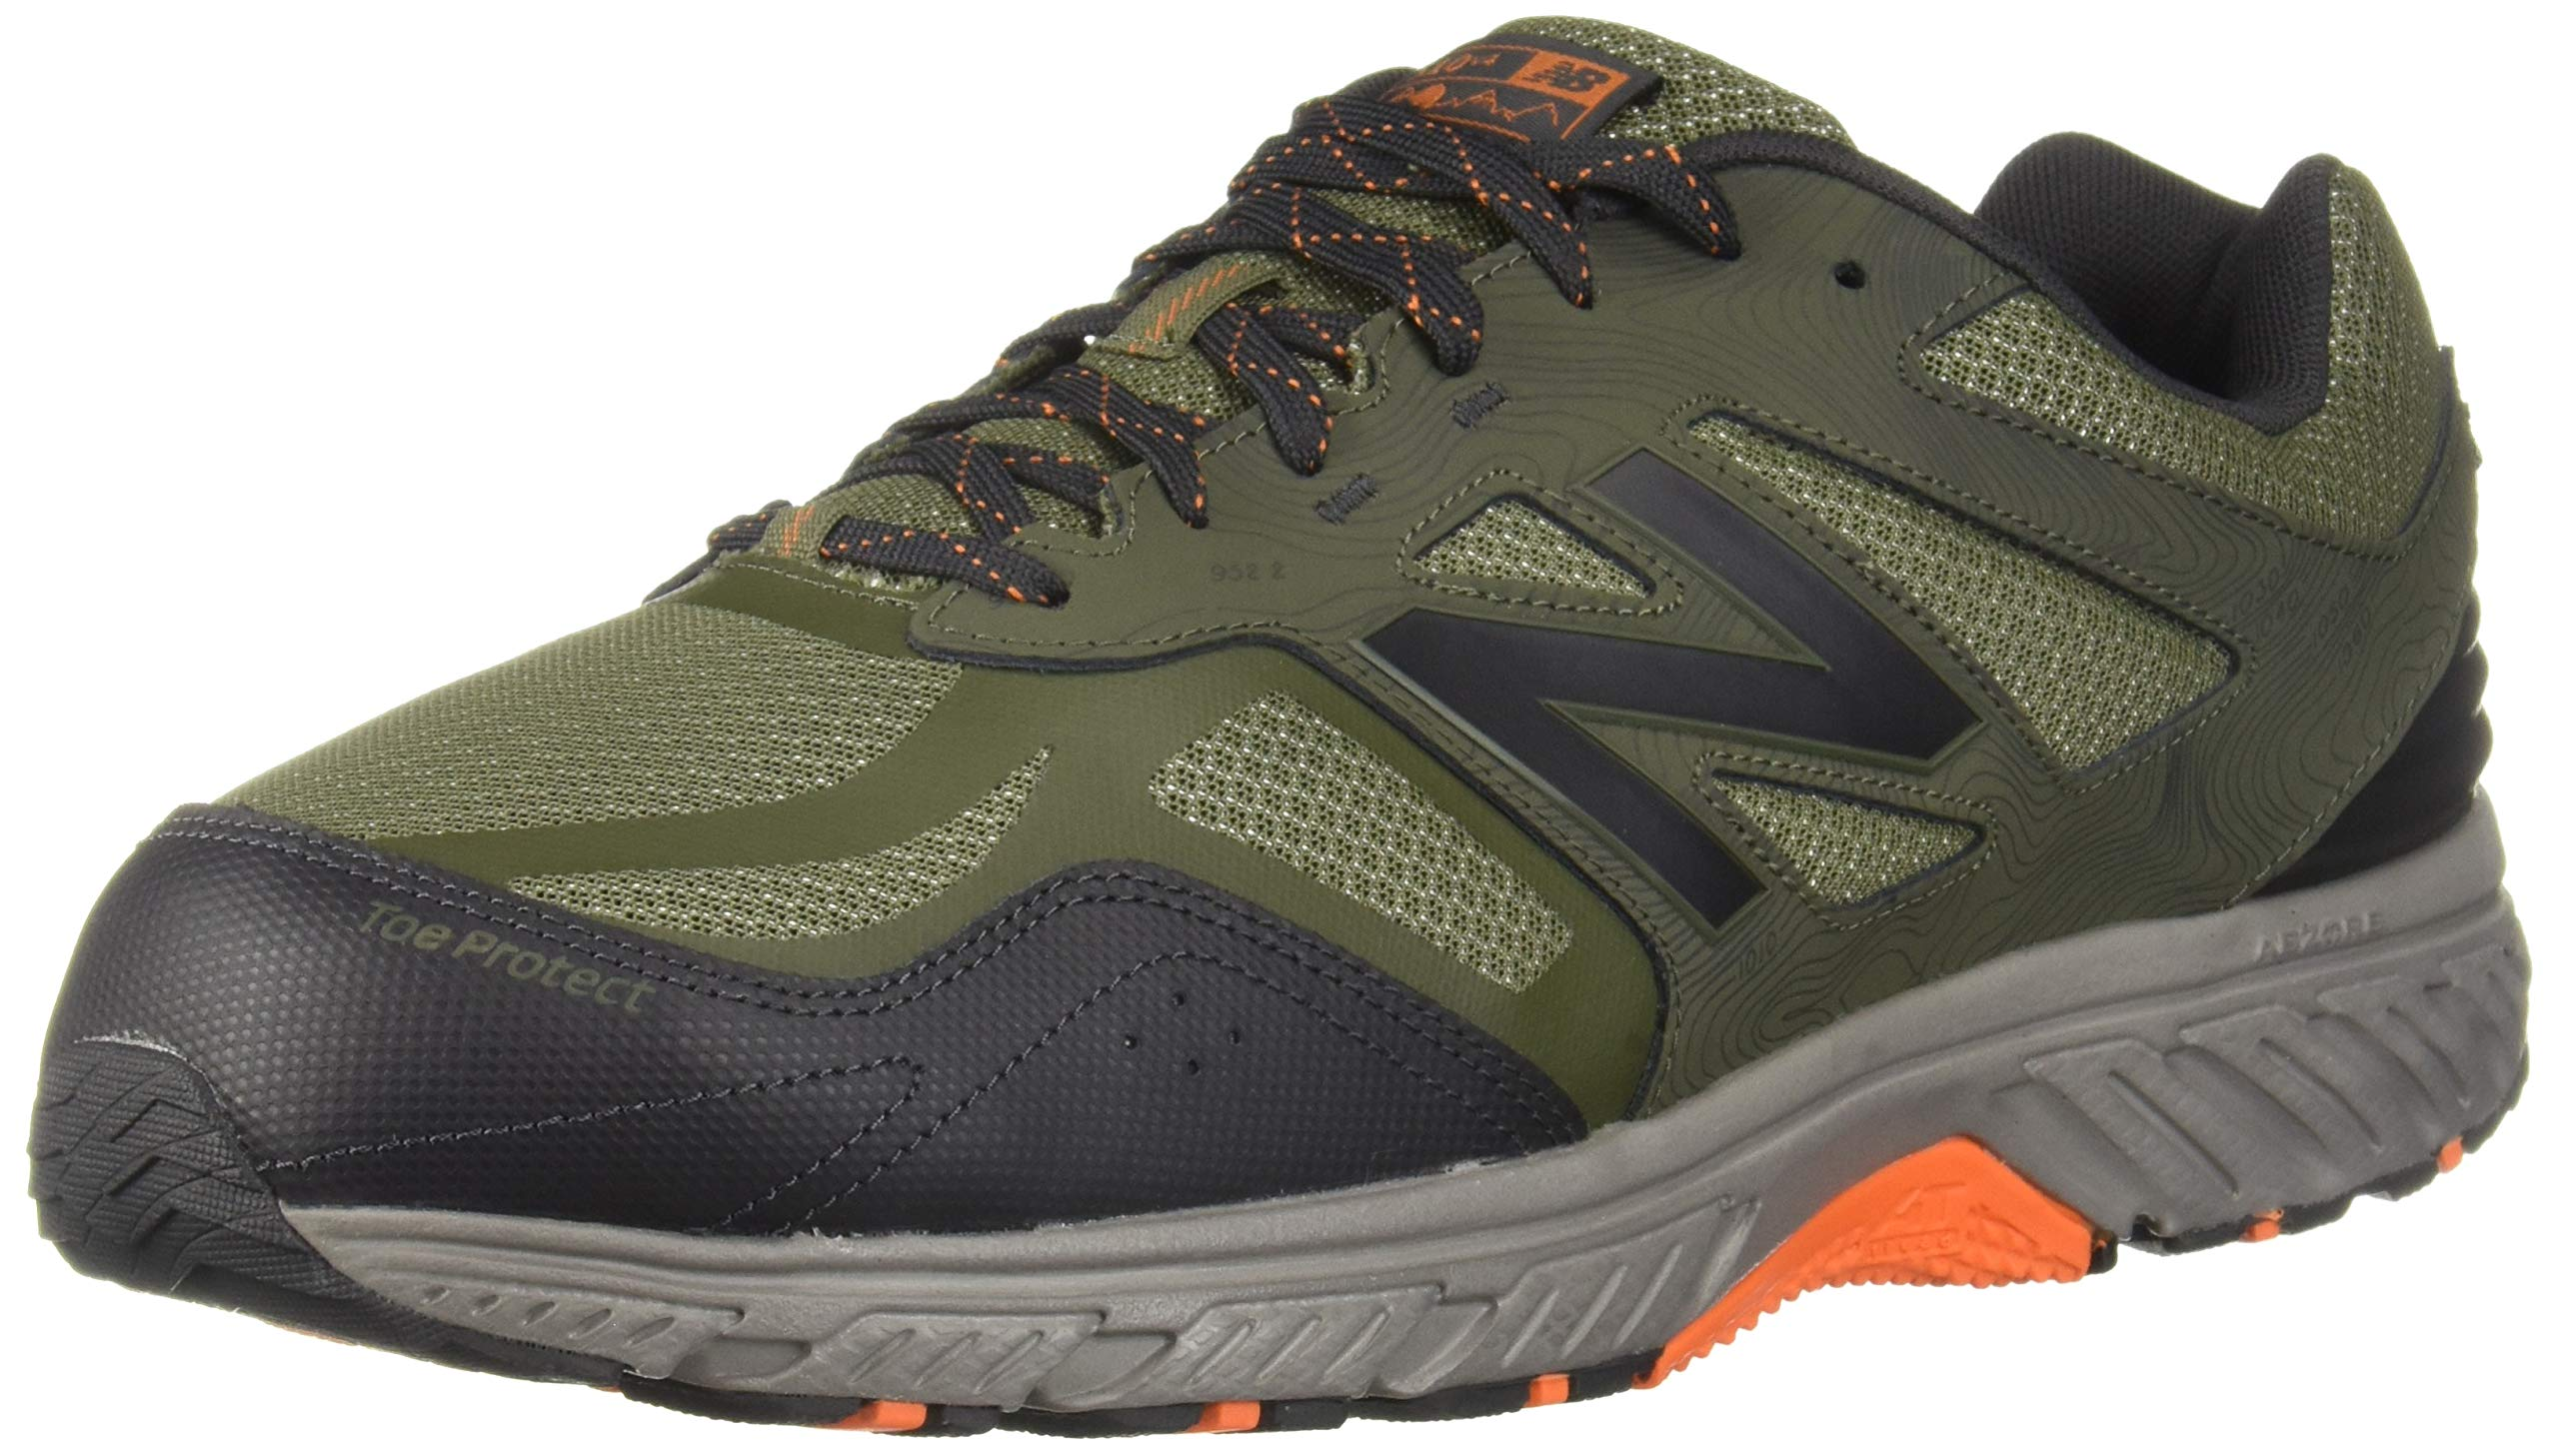 New Balance Men's 510v4 Cushioning Trail Running Shoe, Dark Covert Green/Phantom/Bengal Tiger, 7 D US by New Balance (Image #1)